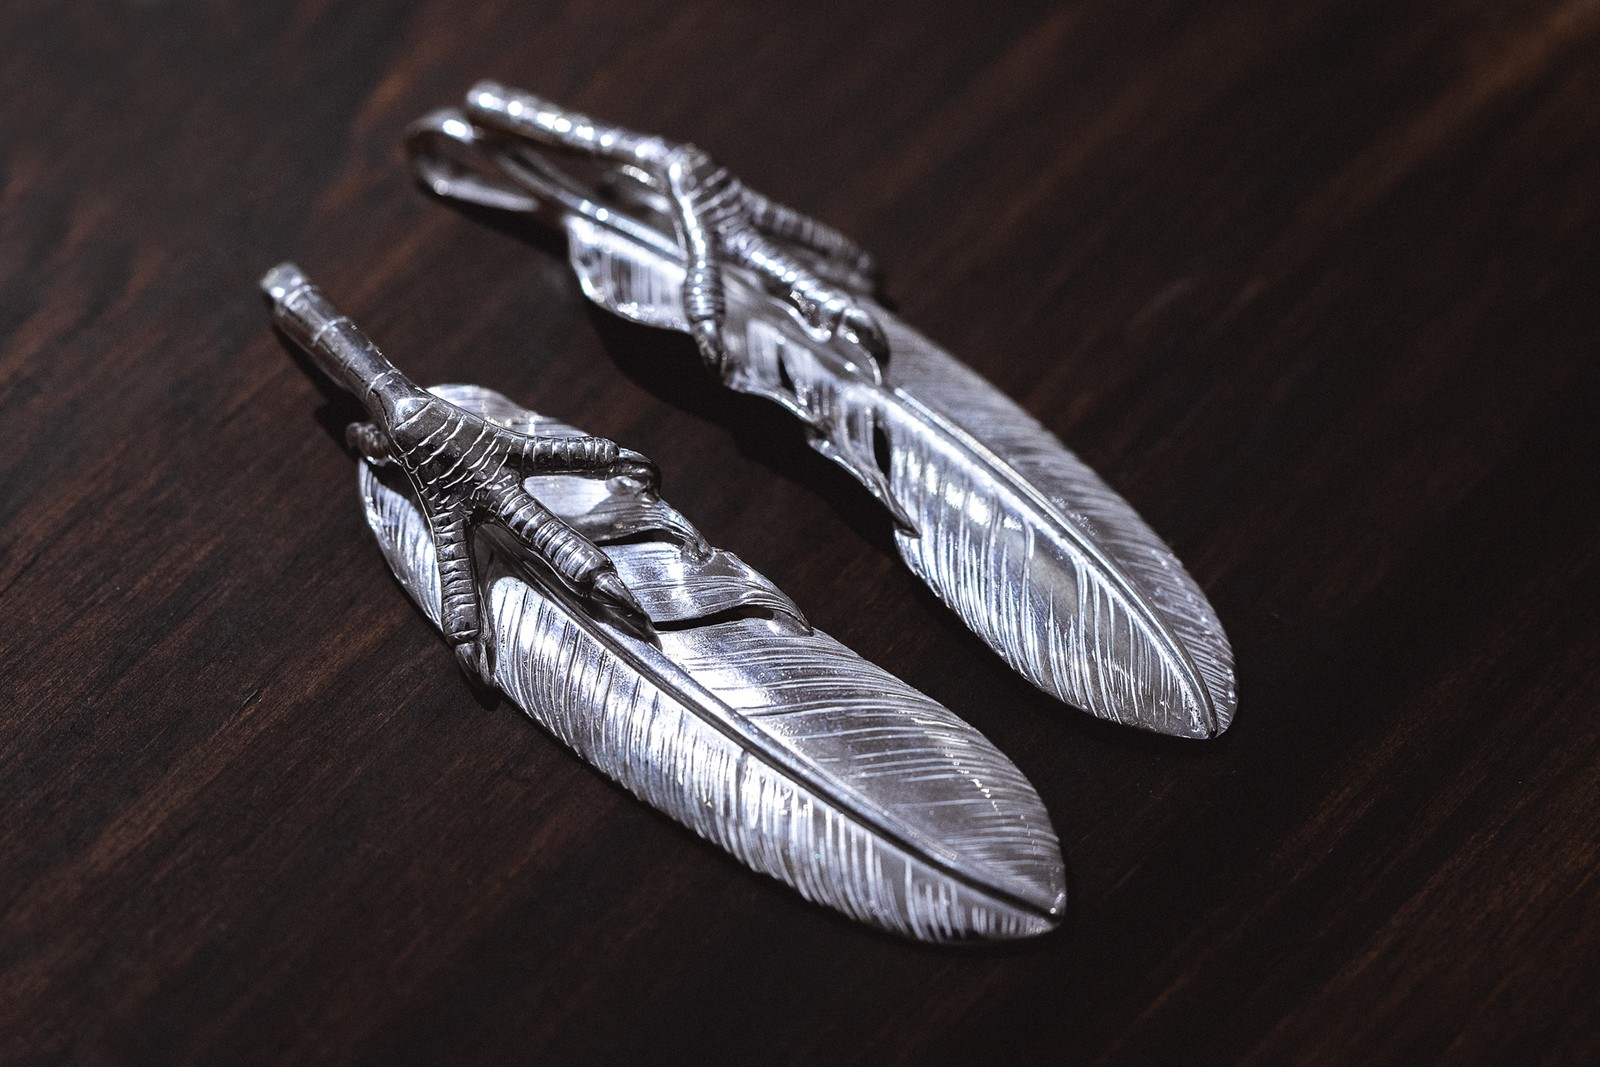 Taro Washimi Native American Silver Jewelry 925 feathers goro's wings claws indian native american jewelry accessories rings bracelets necklaces pendants tokyo Hong Kong Vinavast